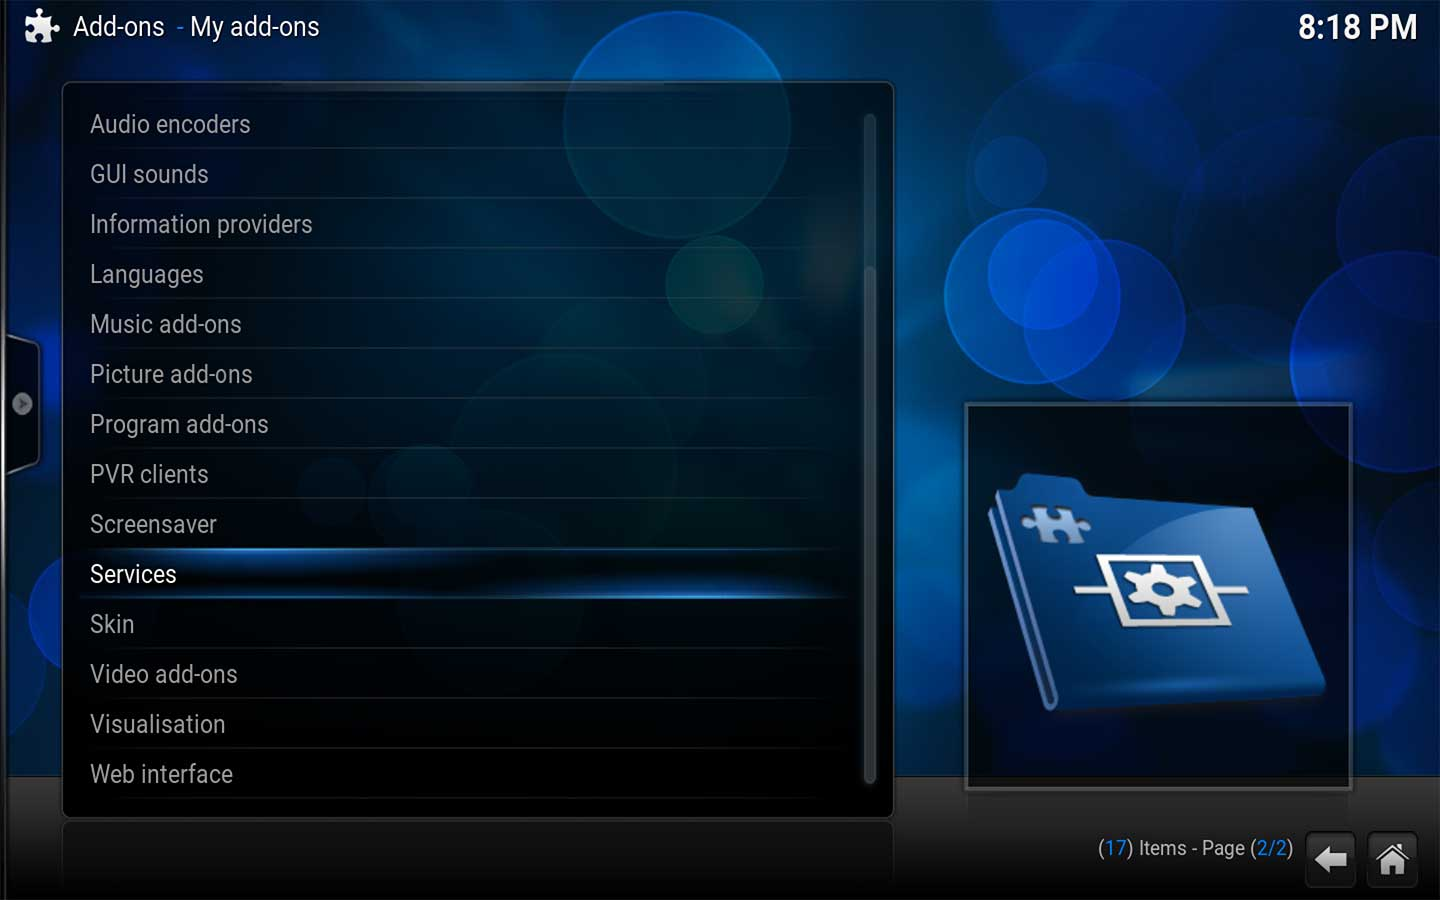 Select Services in Kodi